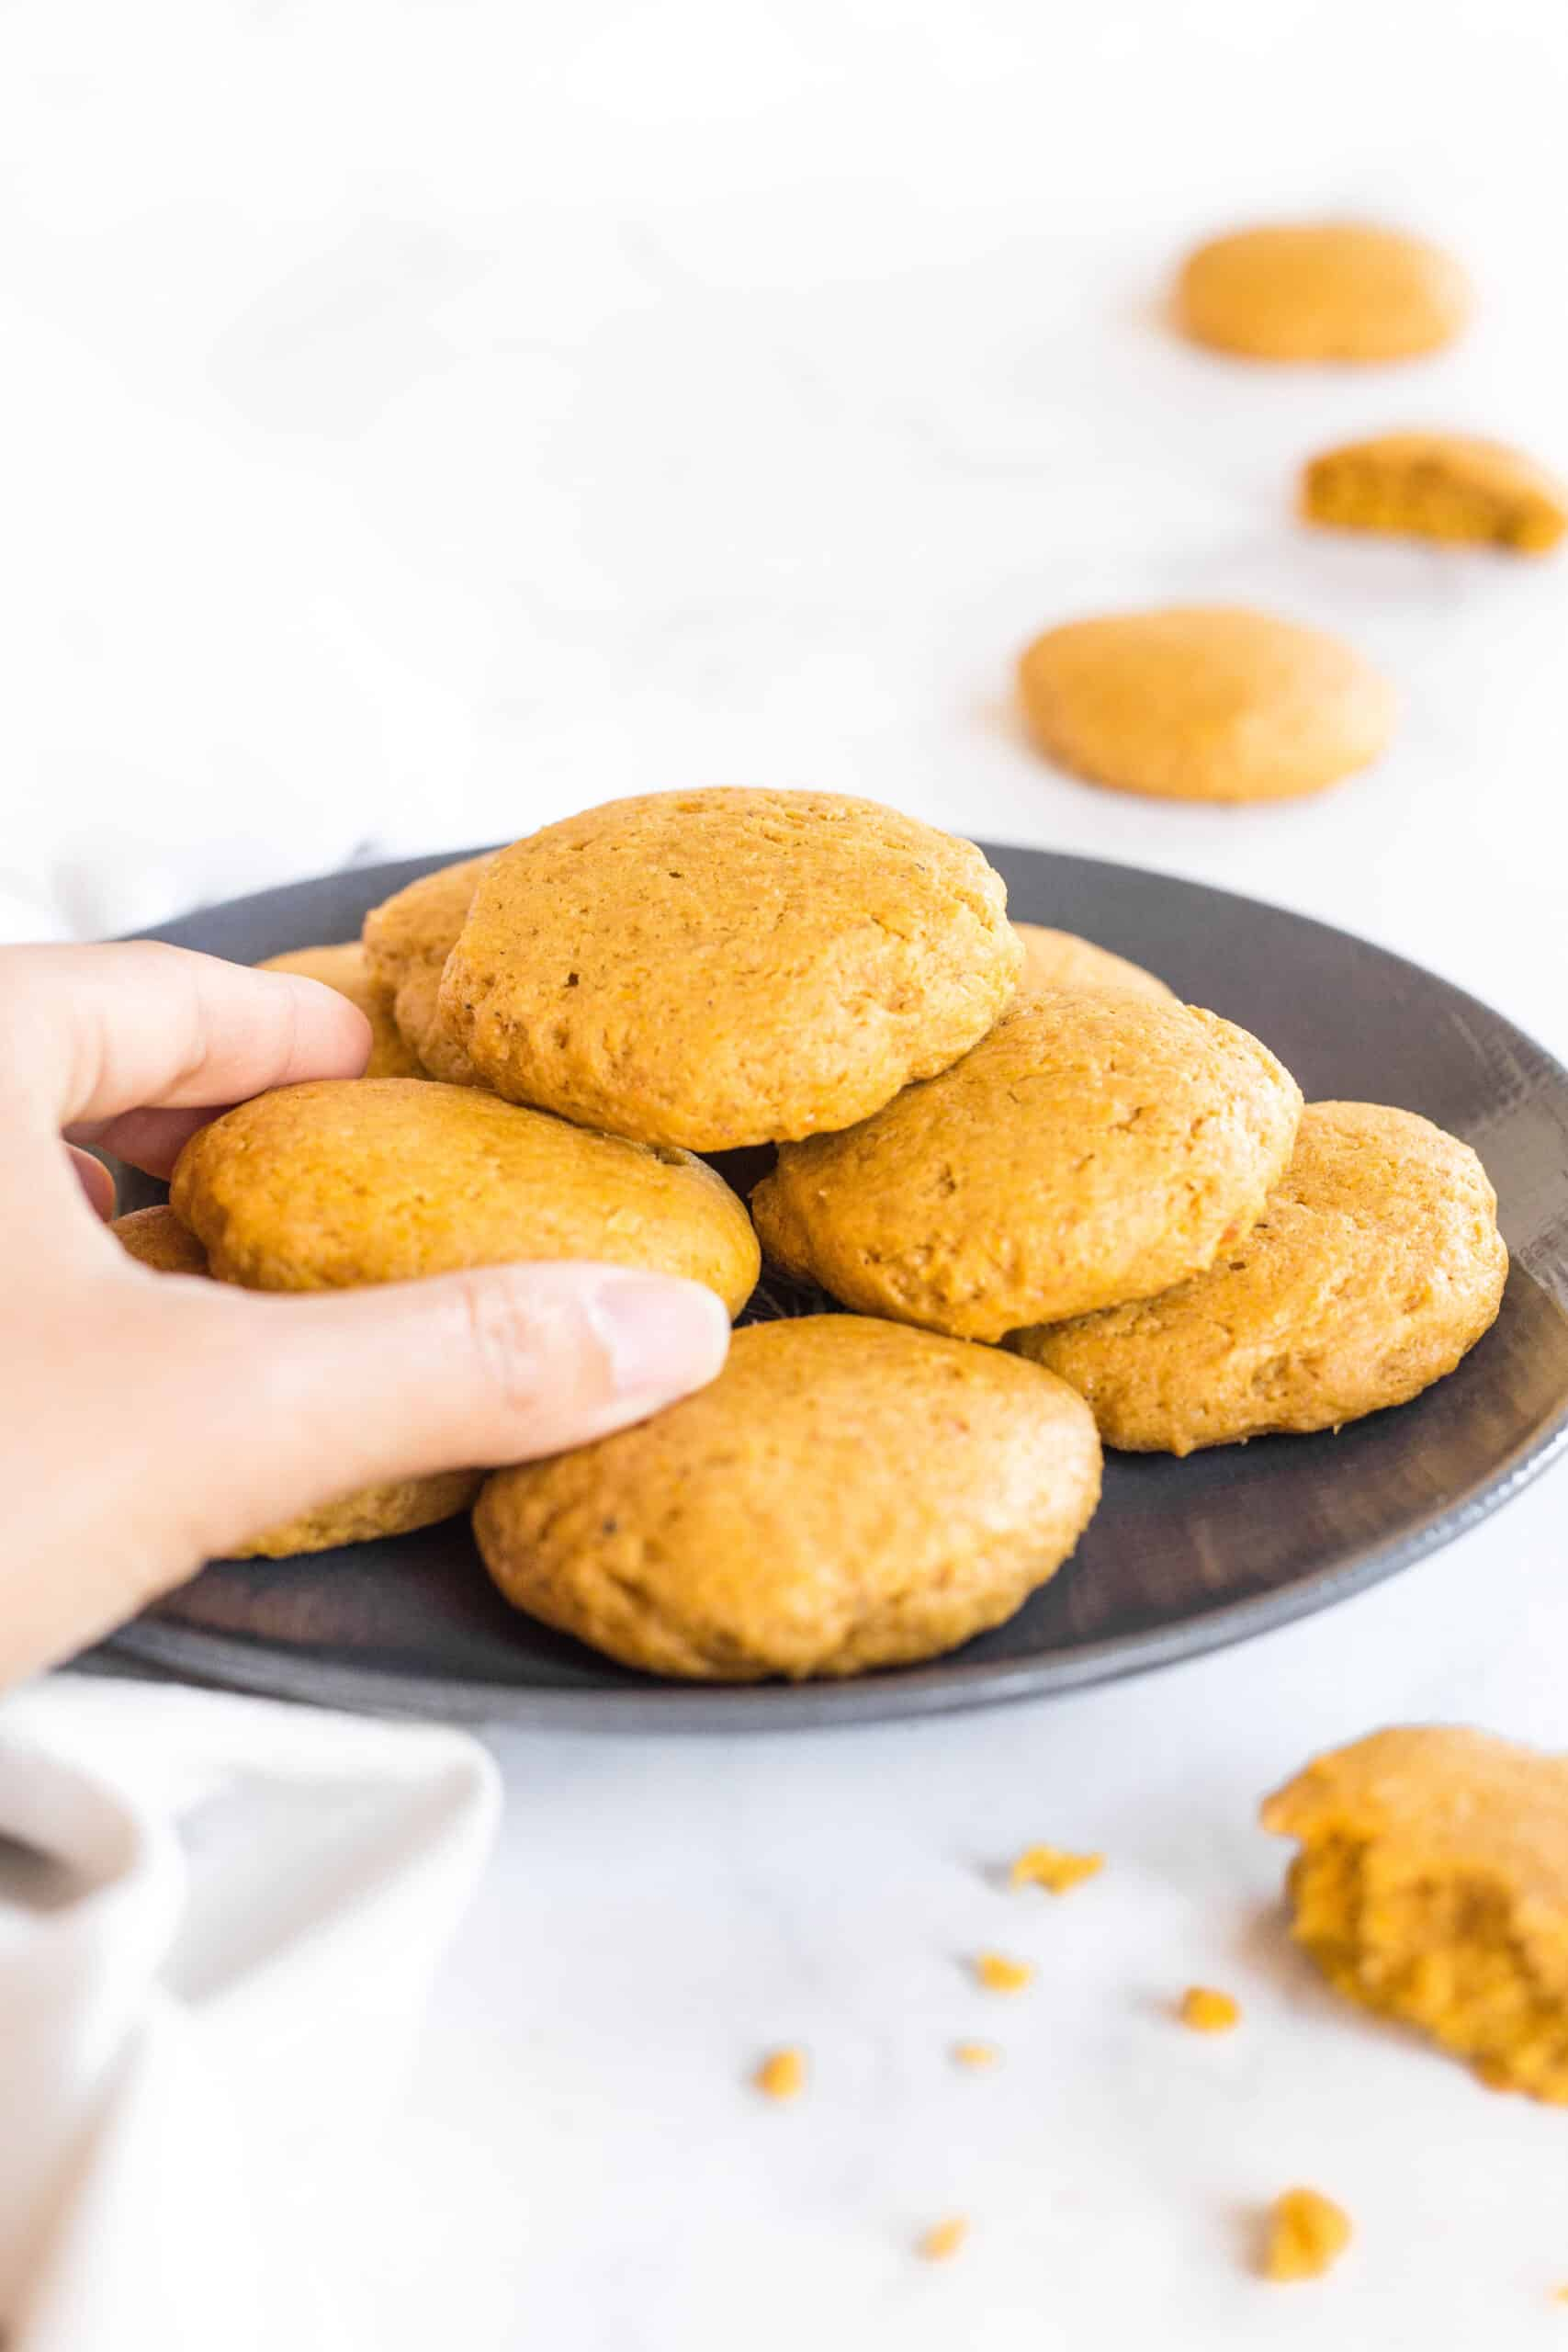 Hand reaching for a cookie from a plate filled with pumpkin cookies.